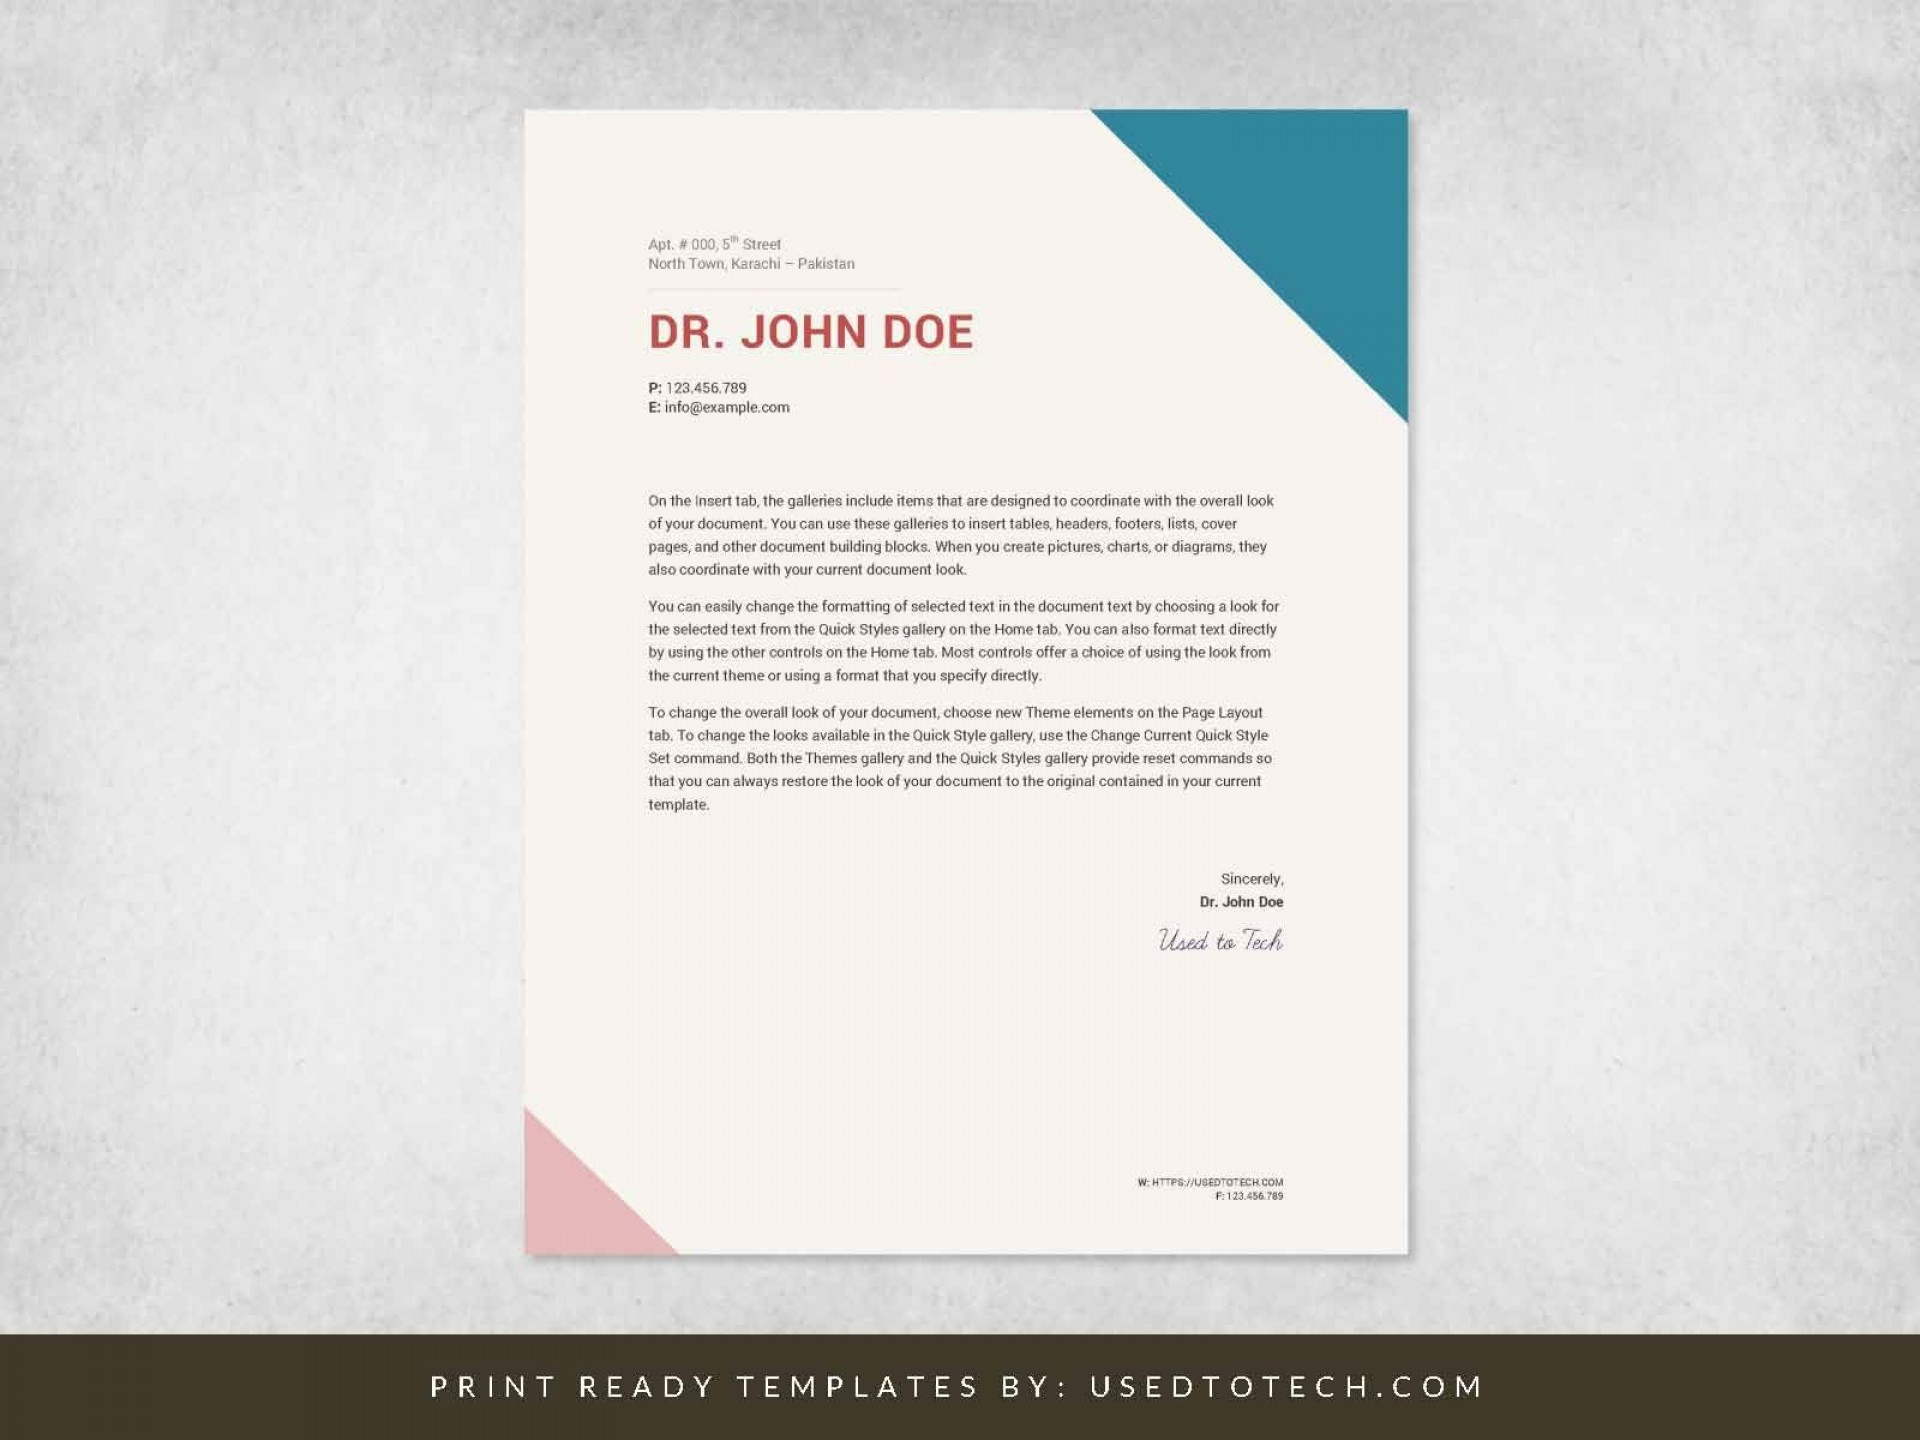 003 Fascinating Letterhead Format In M Word Free Download Concept 1920